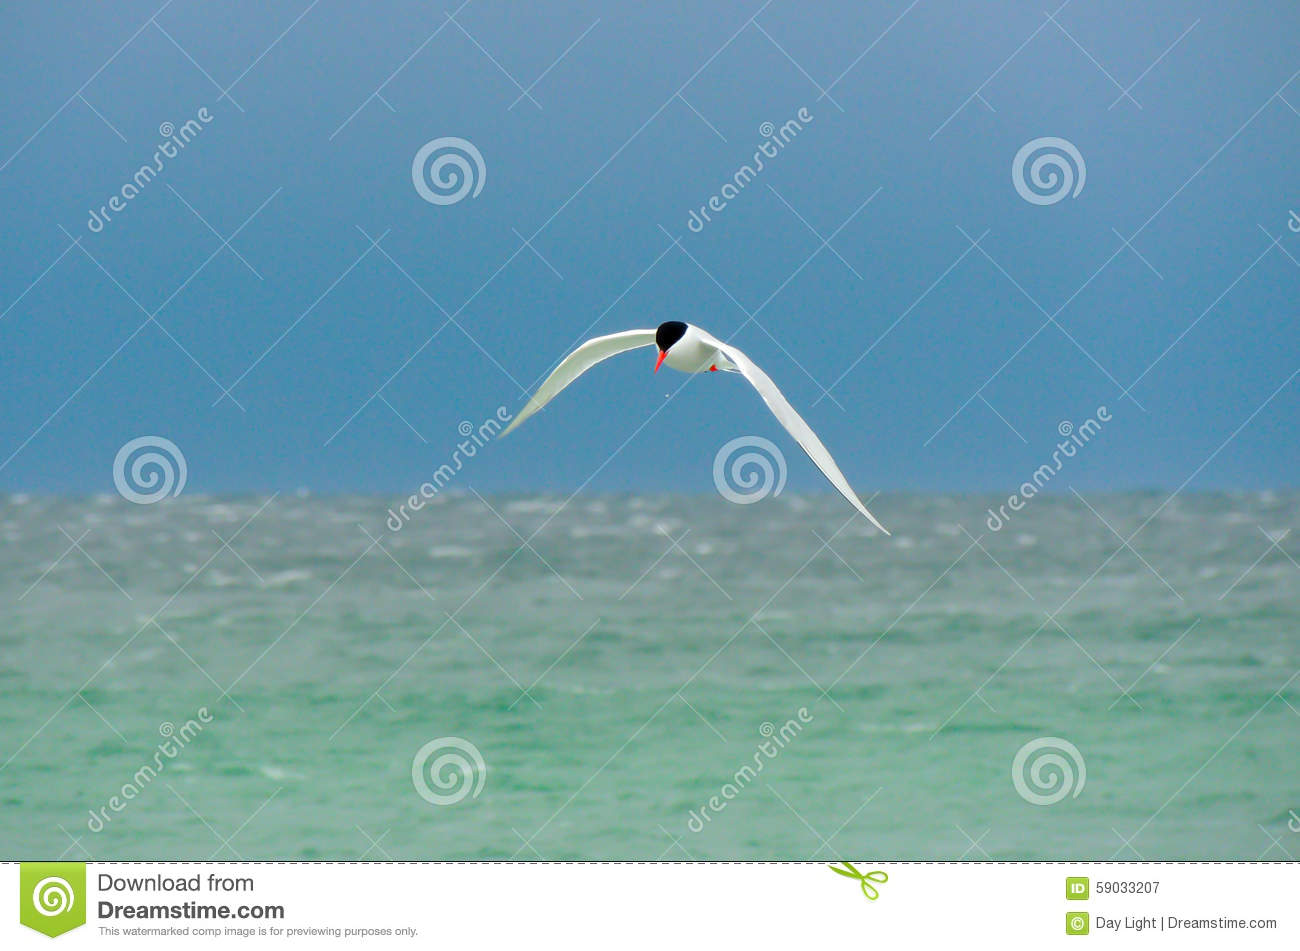 South American Tern over the South Atlantic